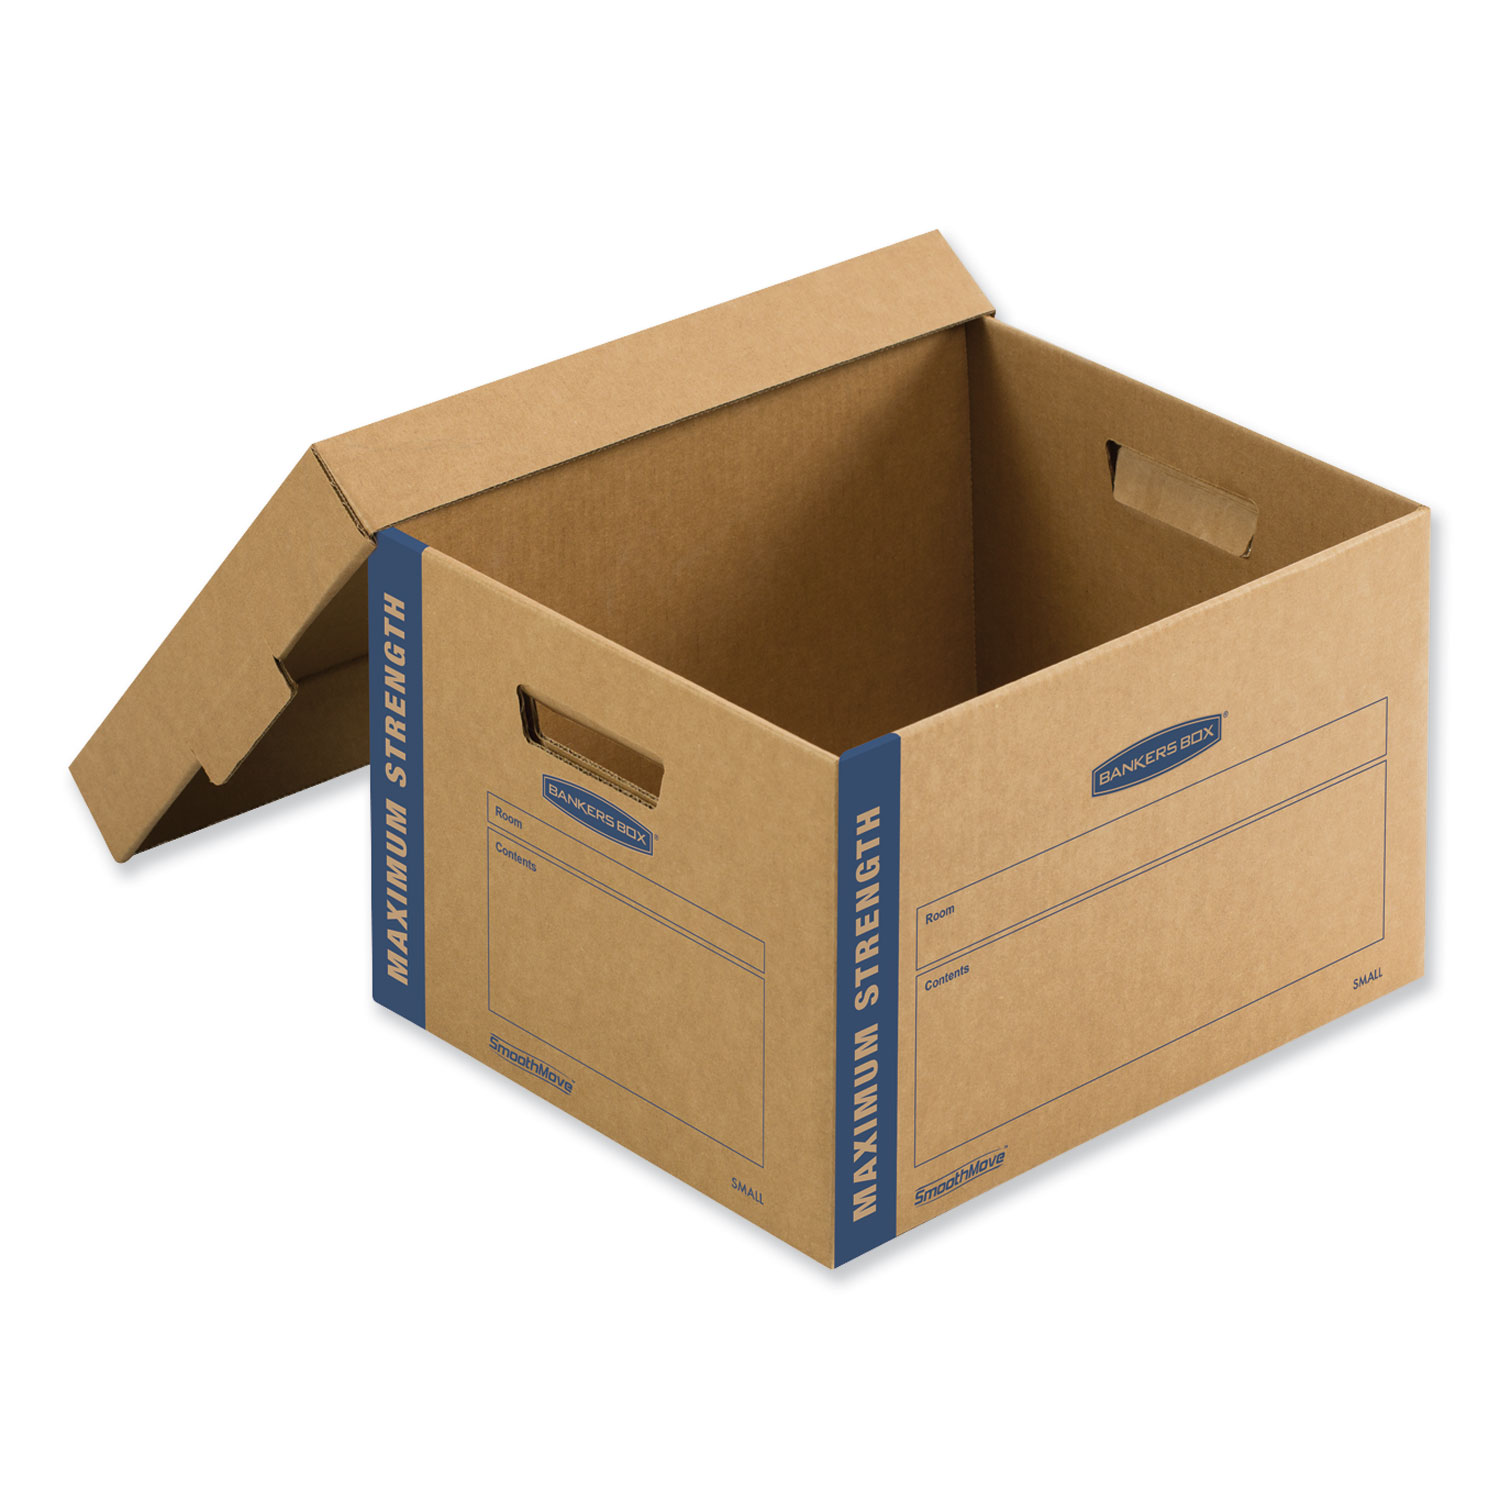 """SmoothMove Maximum Strength Moving Boxes, Medium, Half Slotted Container (HSC), 18.5"""" x 12.25"""" x 12"""", Brown Kraft/Blue, 8/PK"""